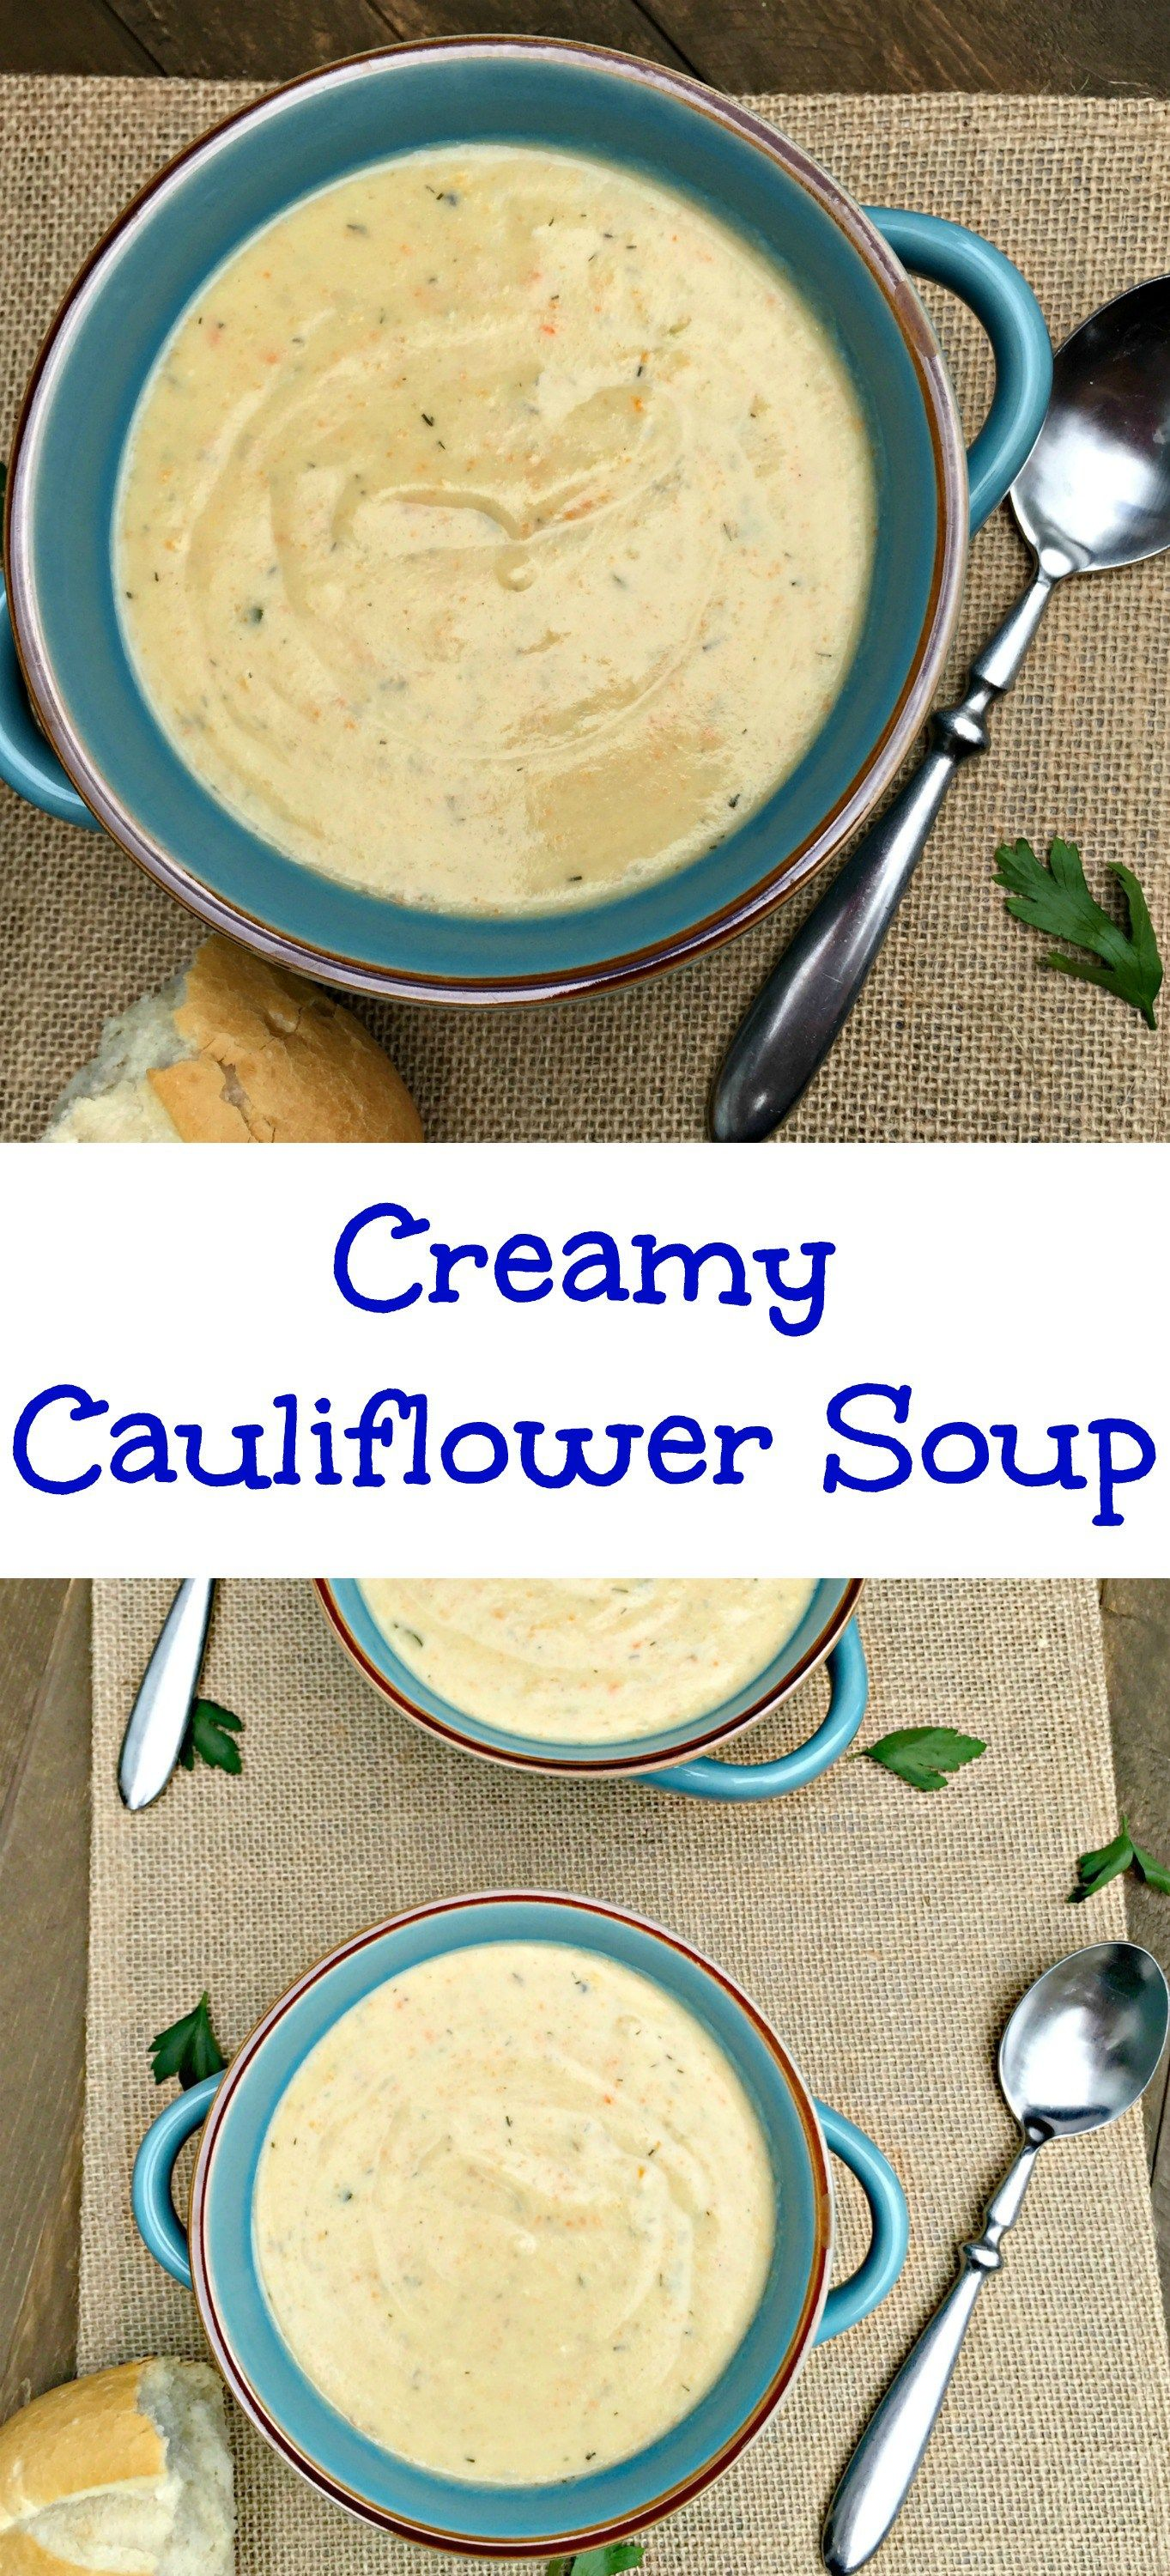 This creamy cauliflower soup is an awesome blend of veggies that pairs well with grilled cheese or as a meal by itself. As you probably have already realized I love cauliflower. I believe I've cooked it every way possible except frying it. My kids love mymashed caulifloweras well as mypanko crusted cauliflower bites. And honestly,...Read More »